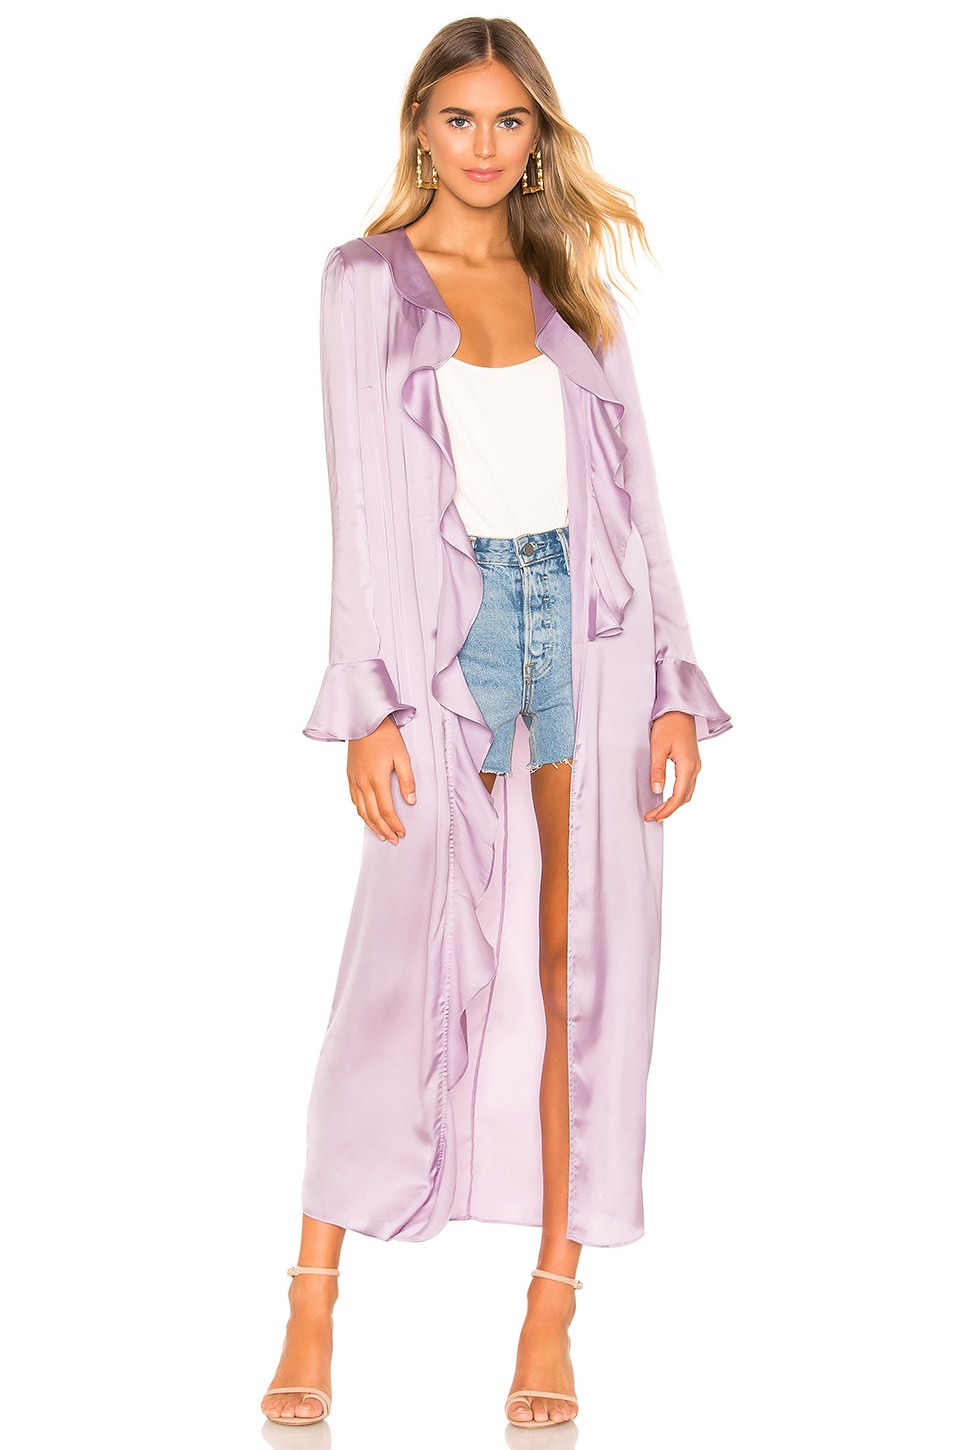 Tularosa Michelle Robe in Lavender